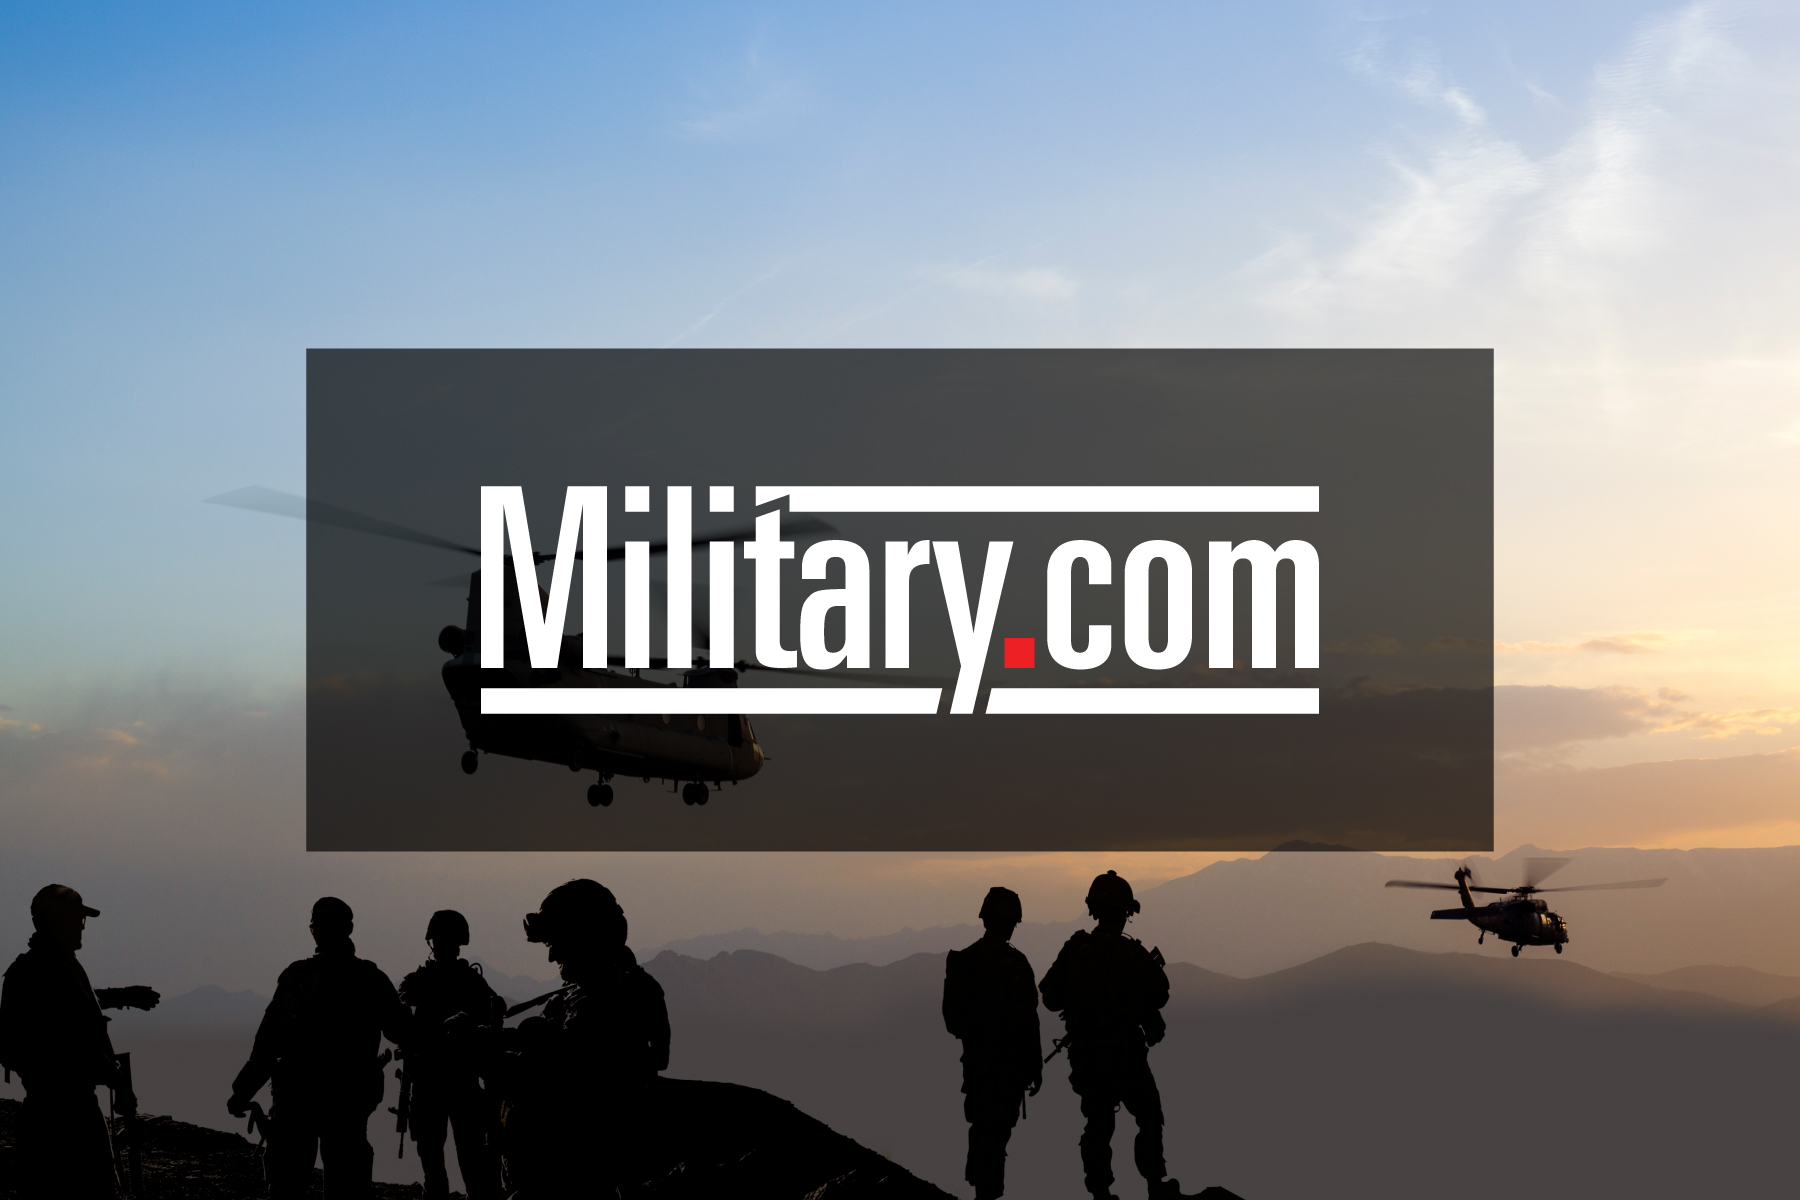 commandos parachuting